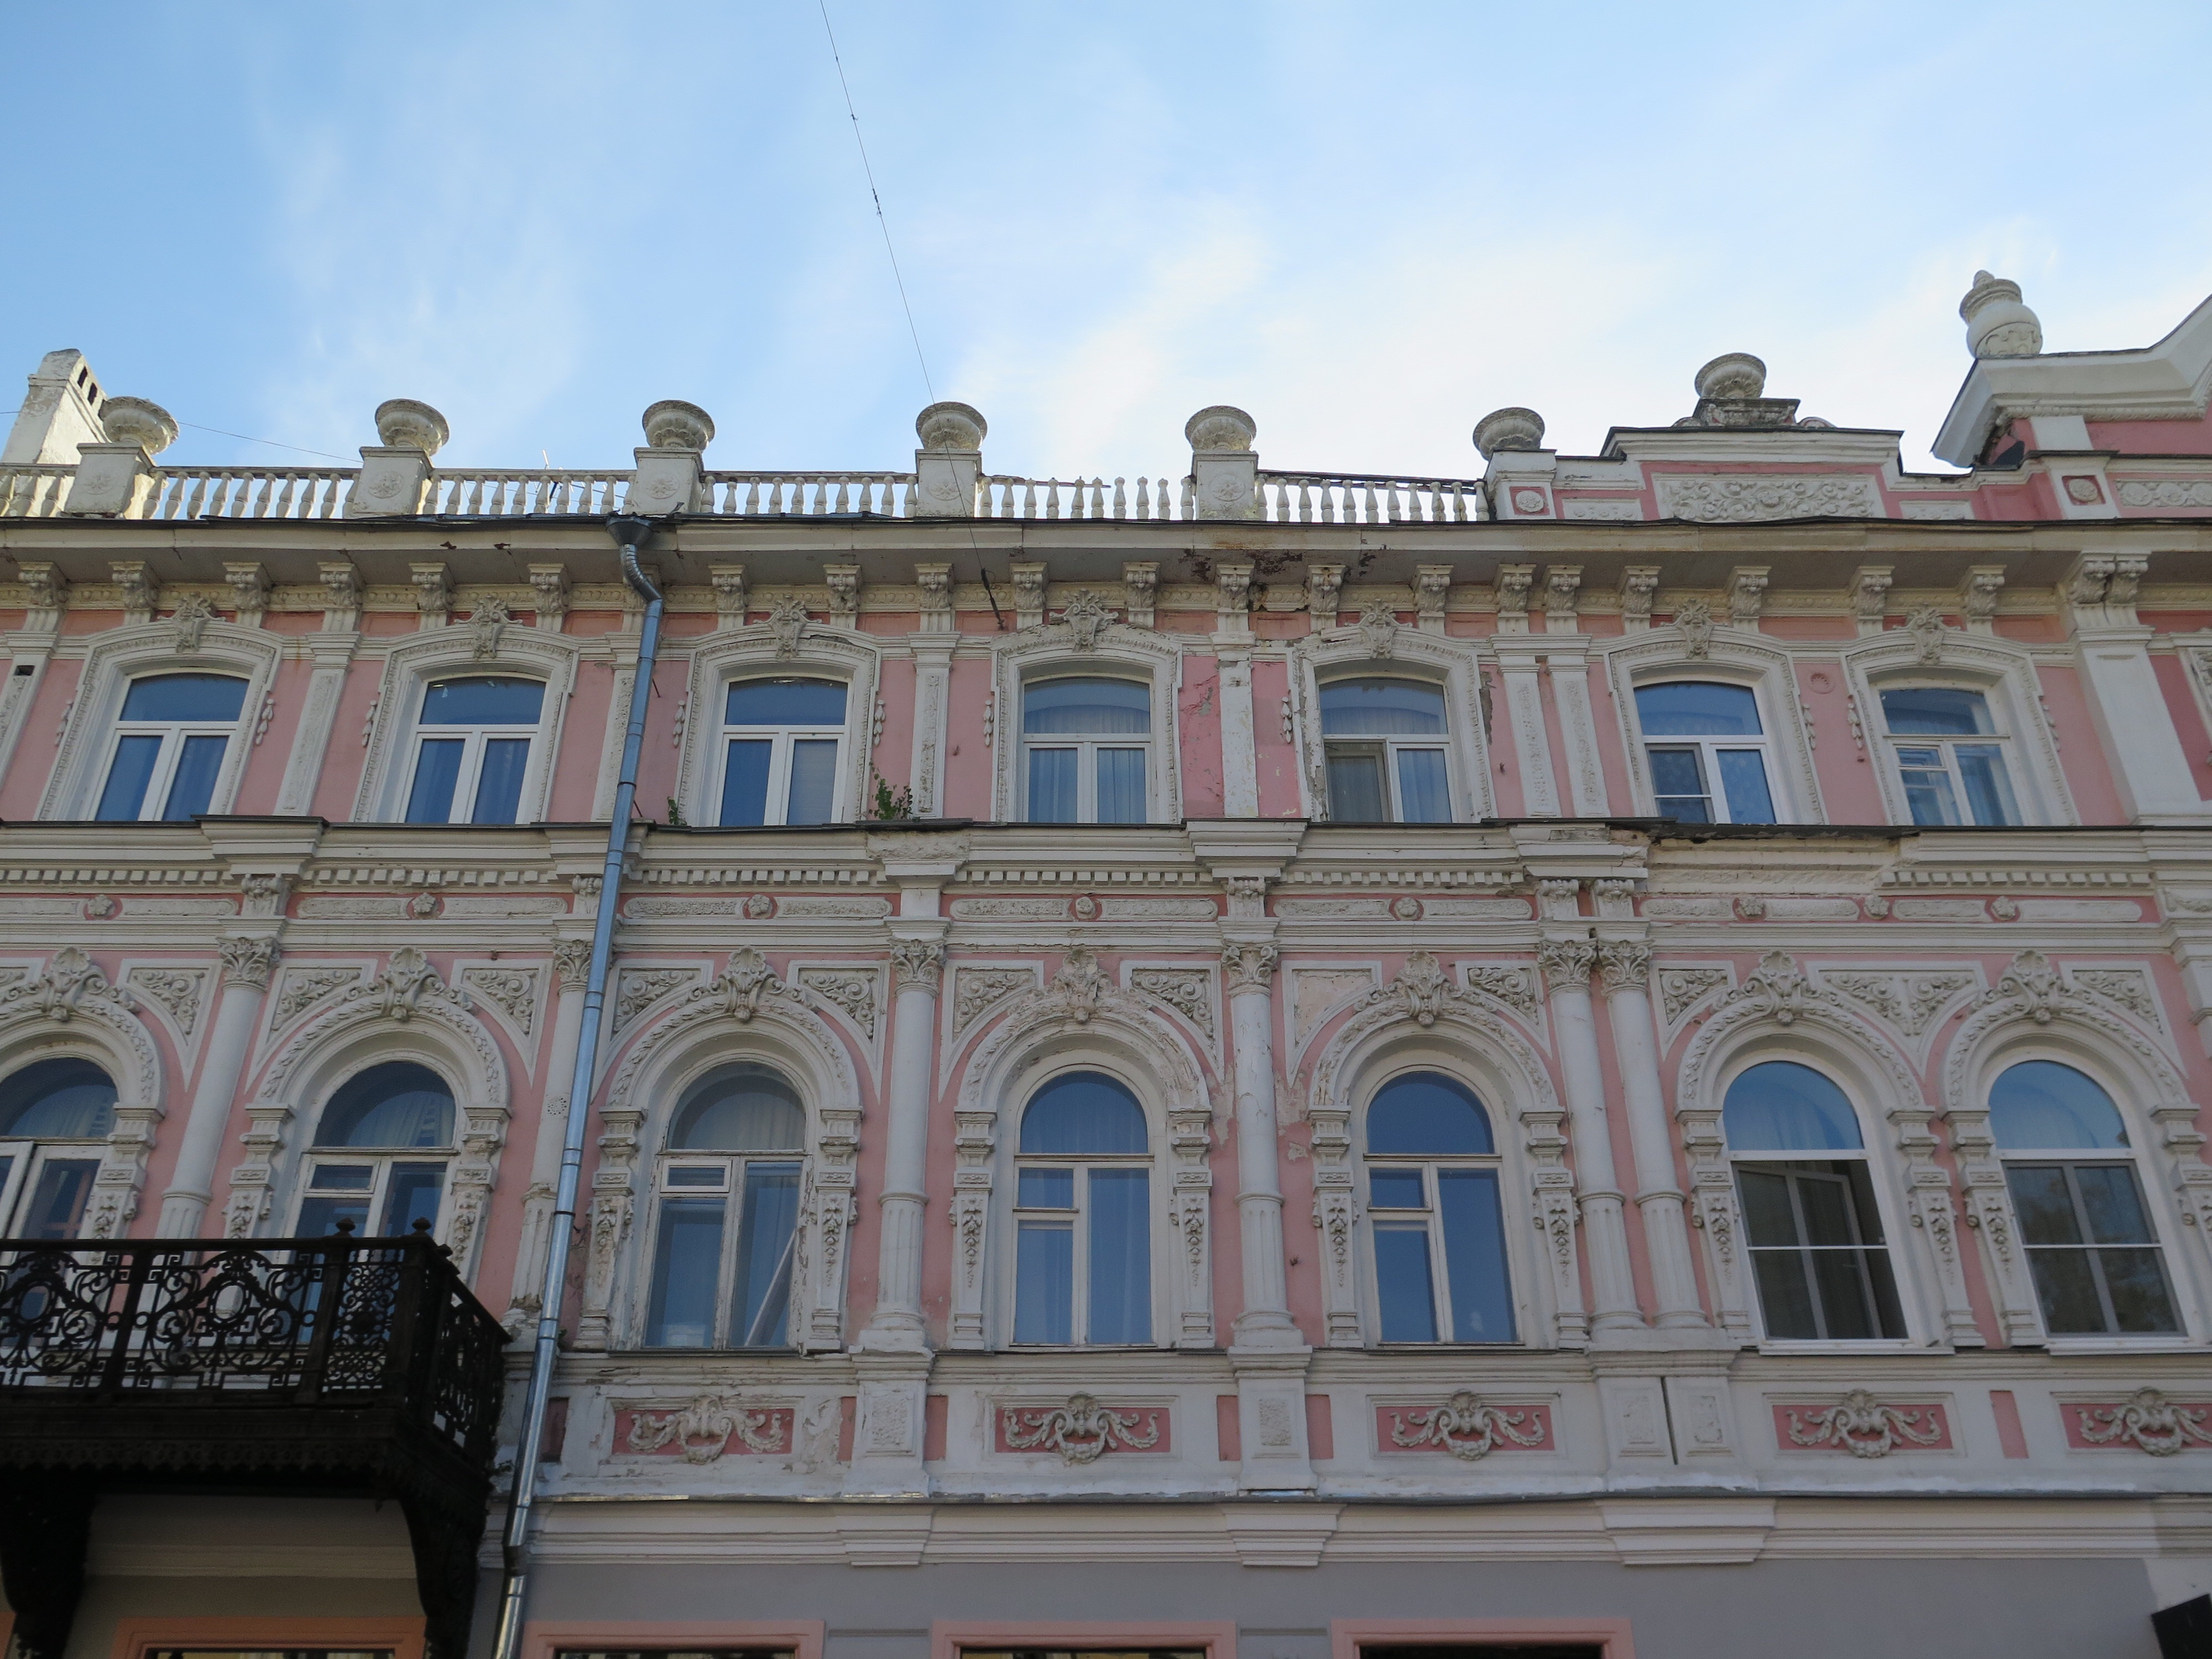 This building is one of many examples of elegant buildings in disrepair. We had just left Kazan, which had many such buildings that were all perfectly maintained. Seeing the oposite here was striking.